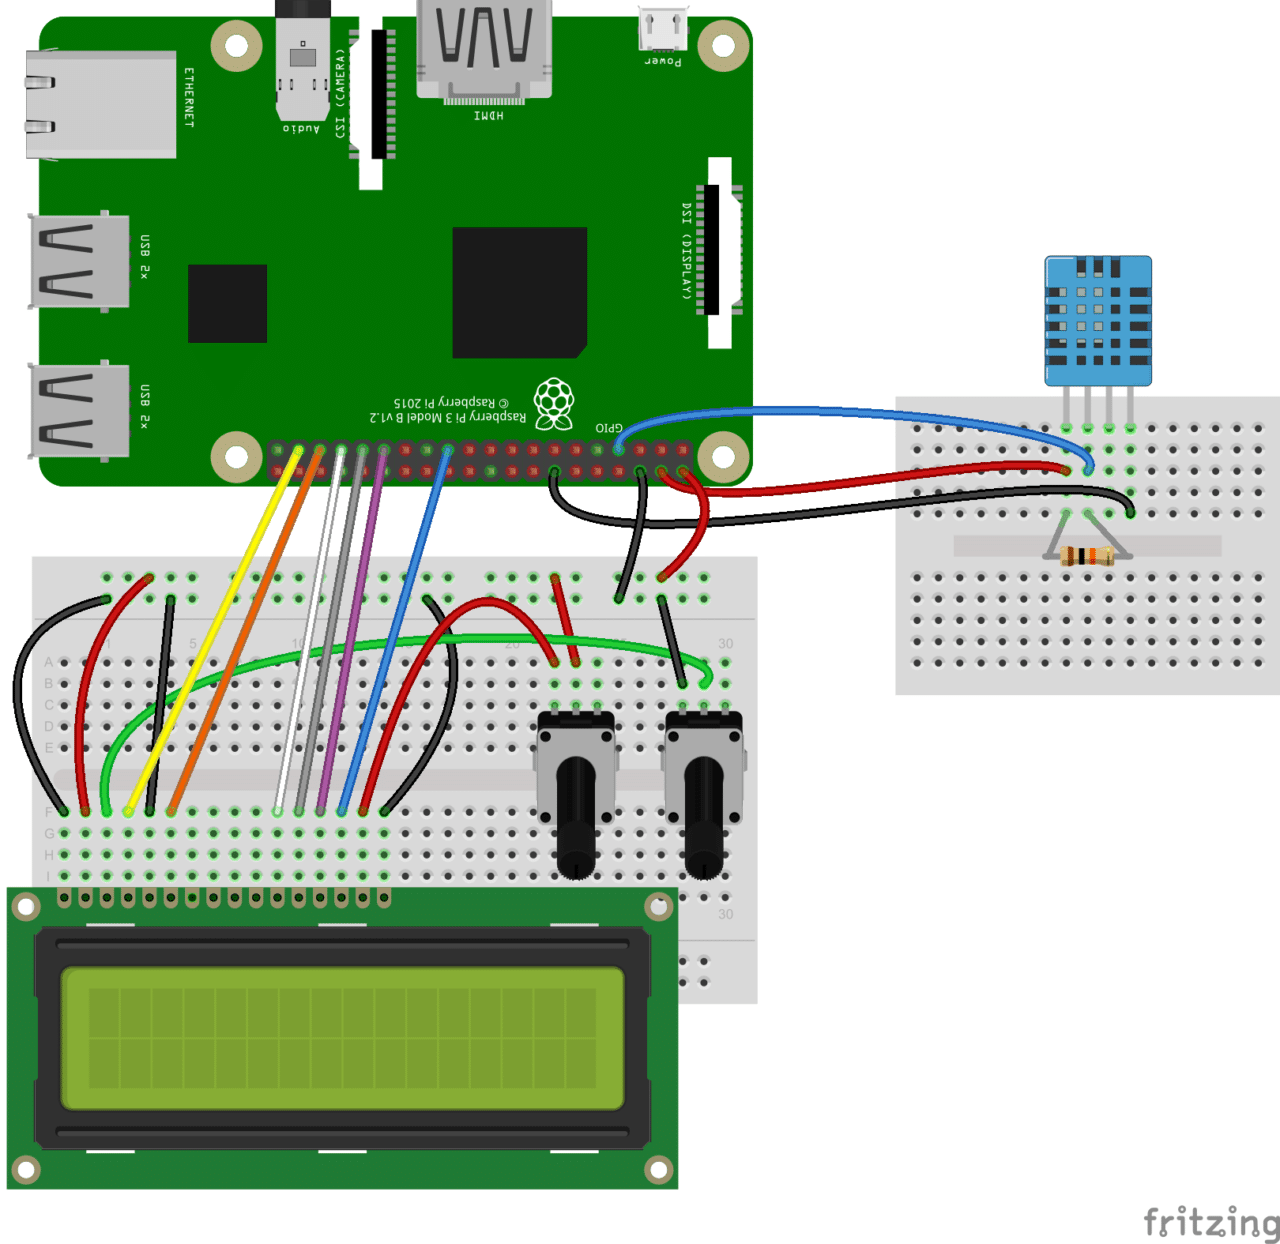 How To Set Up The Dht11 Humidity Sensor On Raspberry Pi 10 Led Wiring Diagram If You Have A Four Pin And Want Output Temperature An Lcd Display Connect It Like This